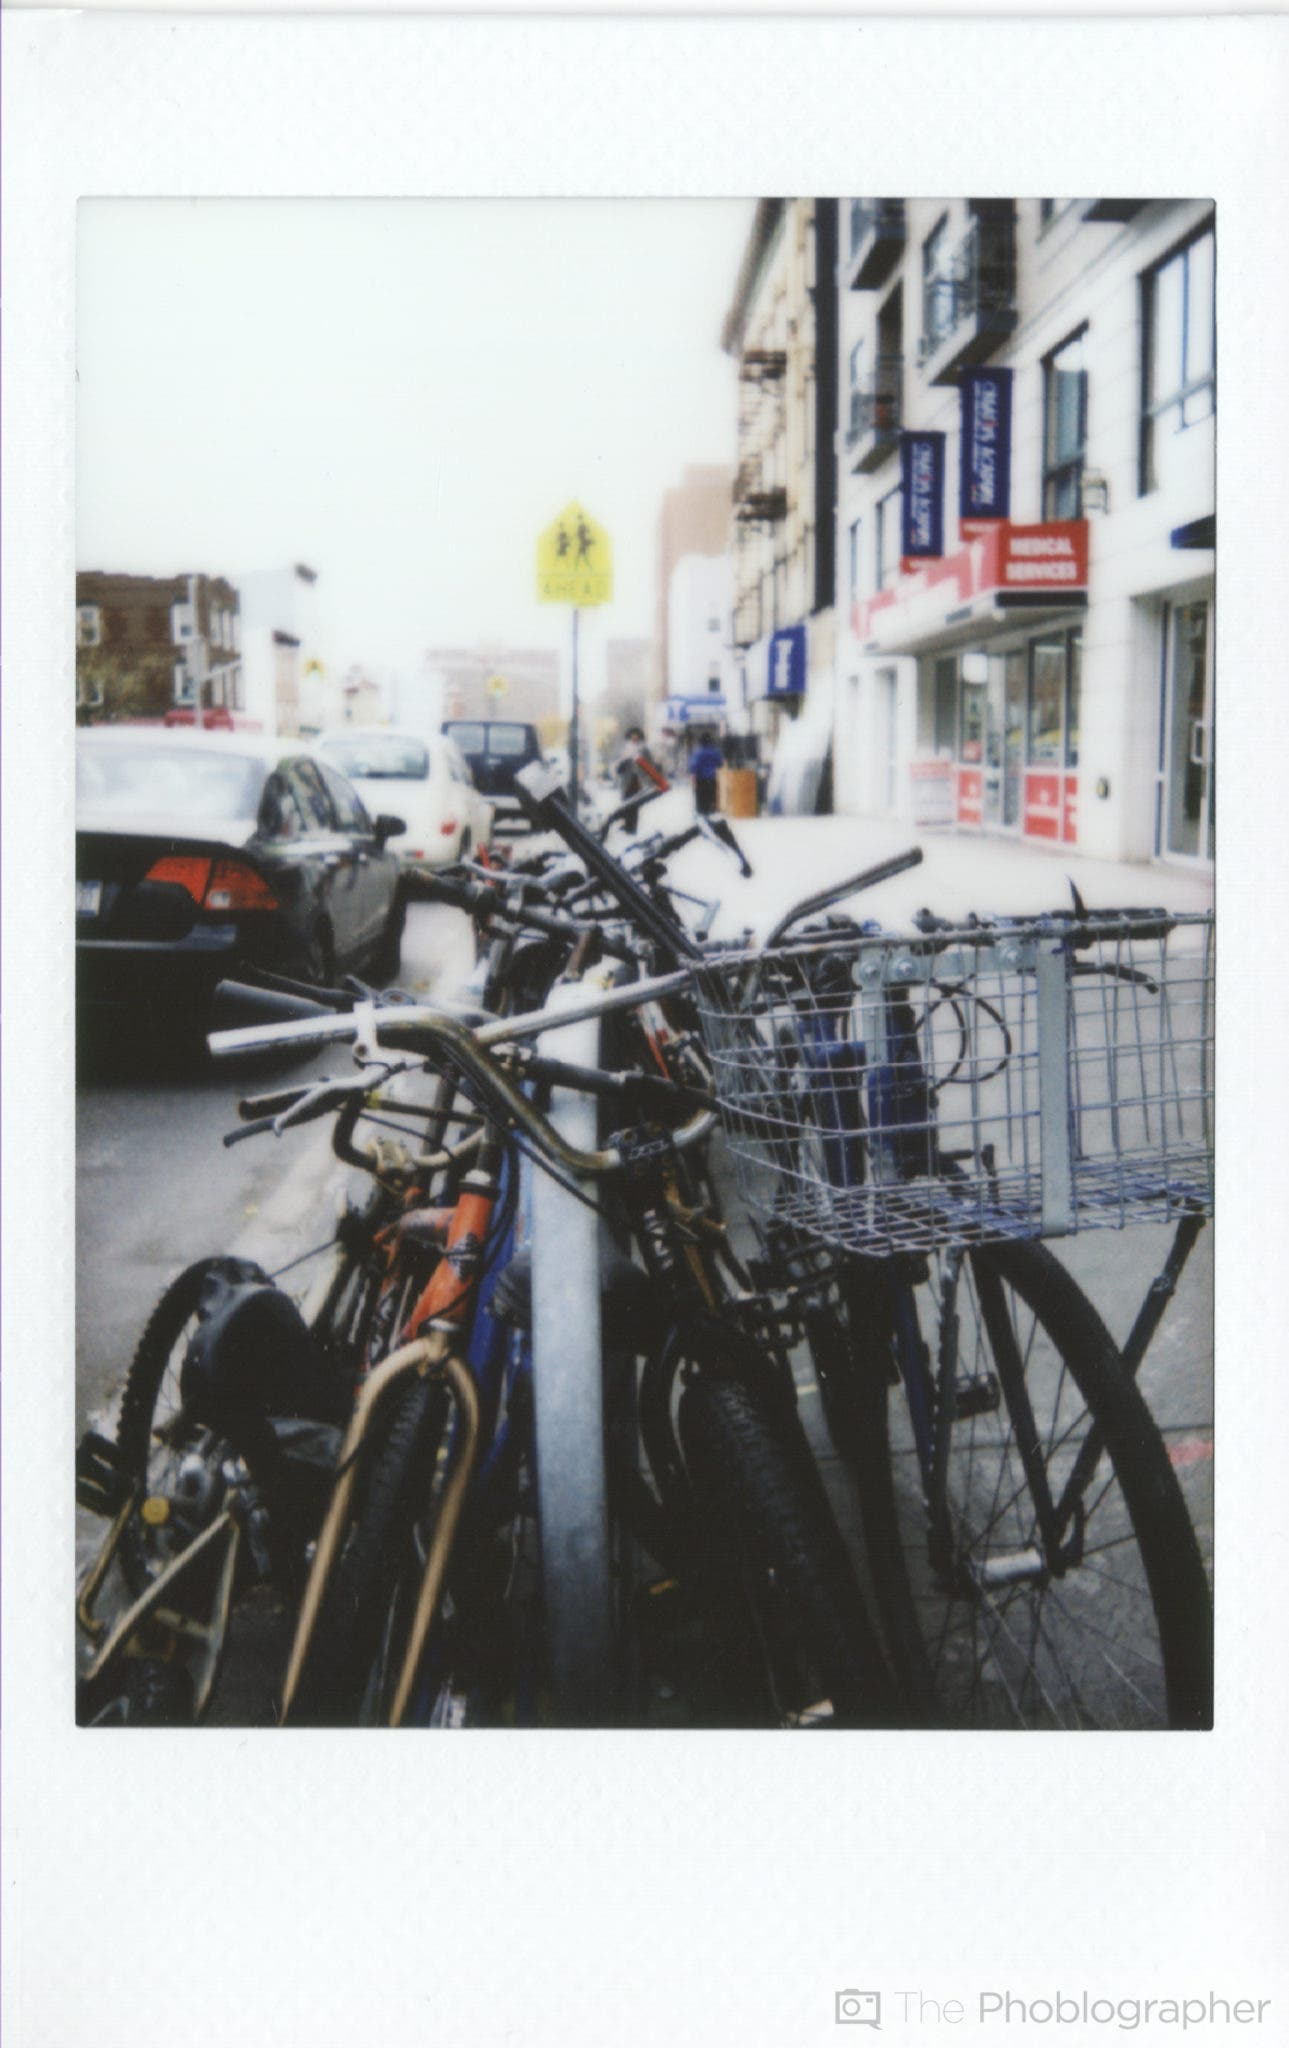 Chris Gampat The Phoblographer Fujifilm Instax Mini 70 scan bikes (1 of 1)